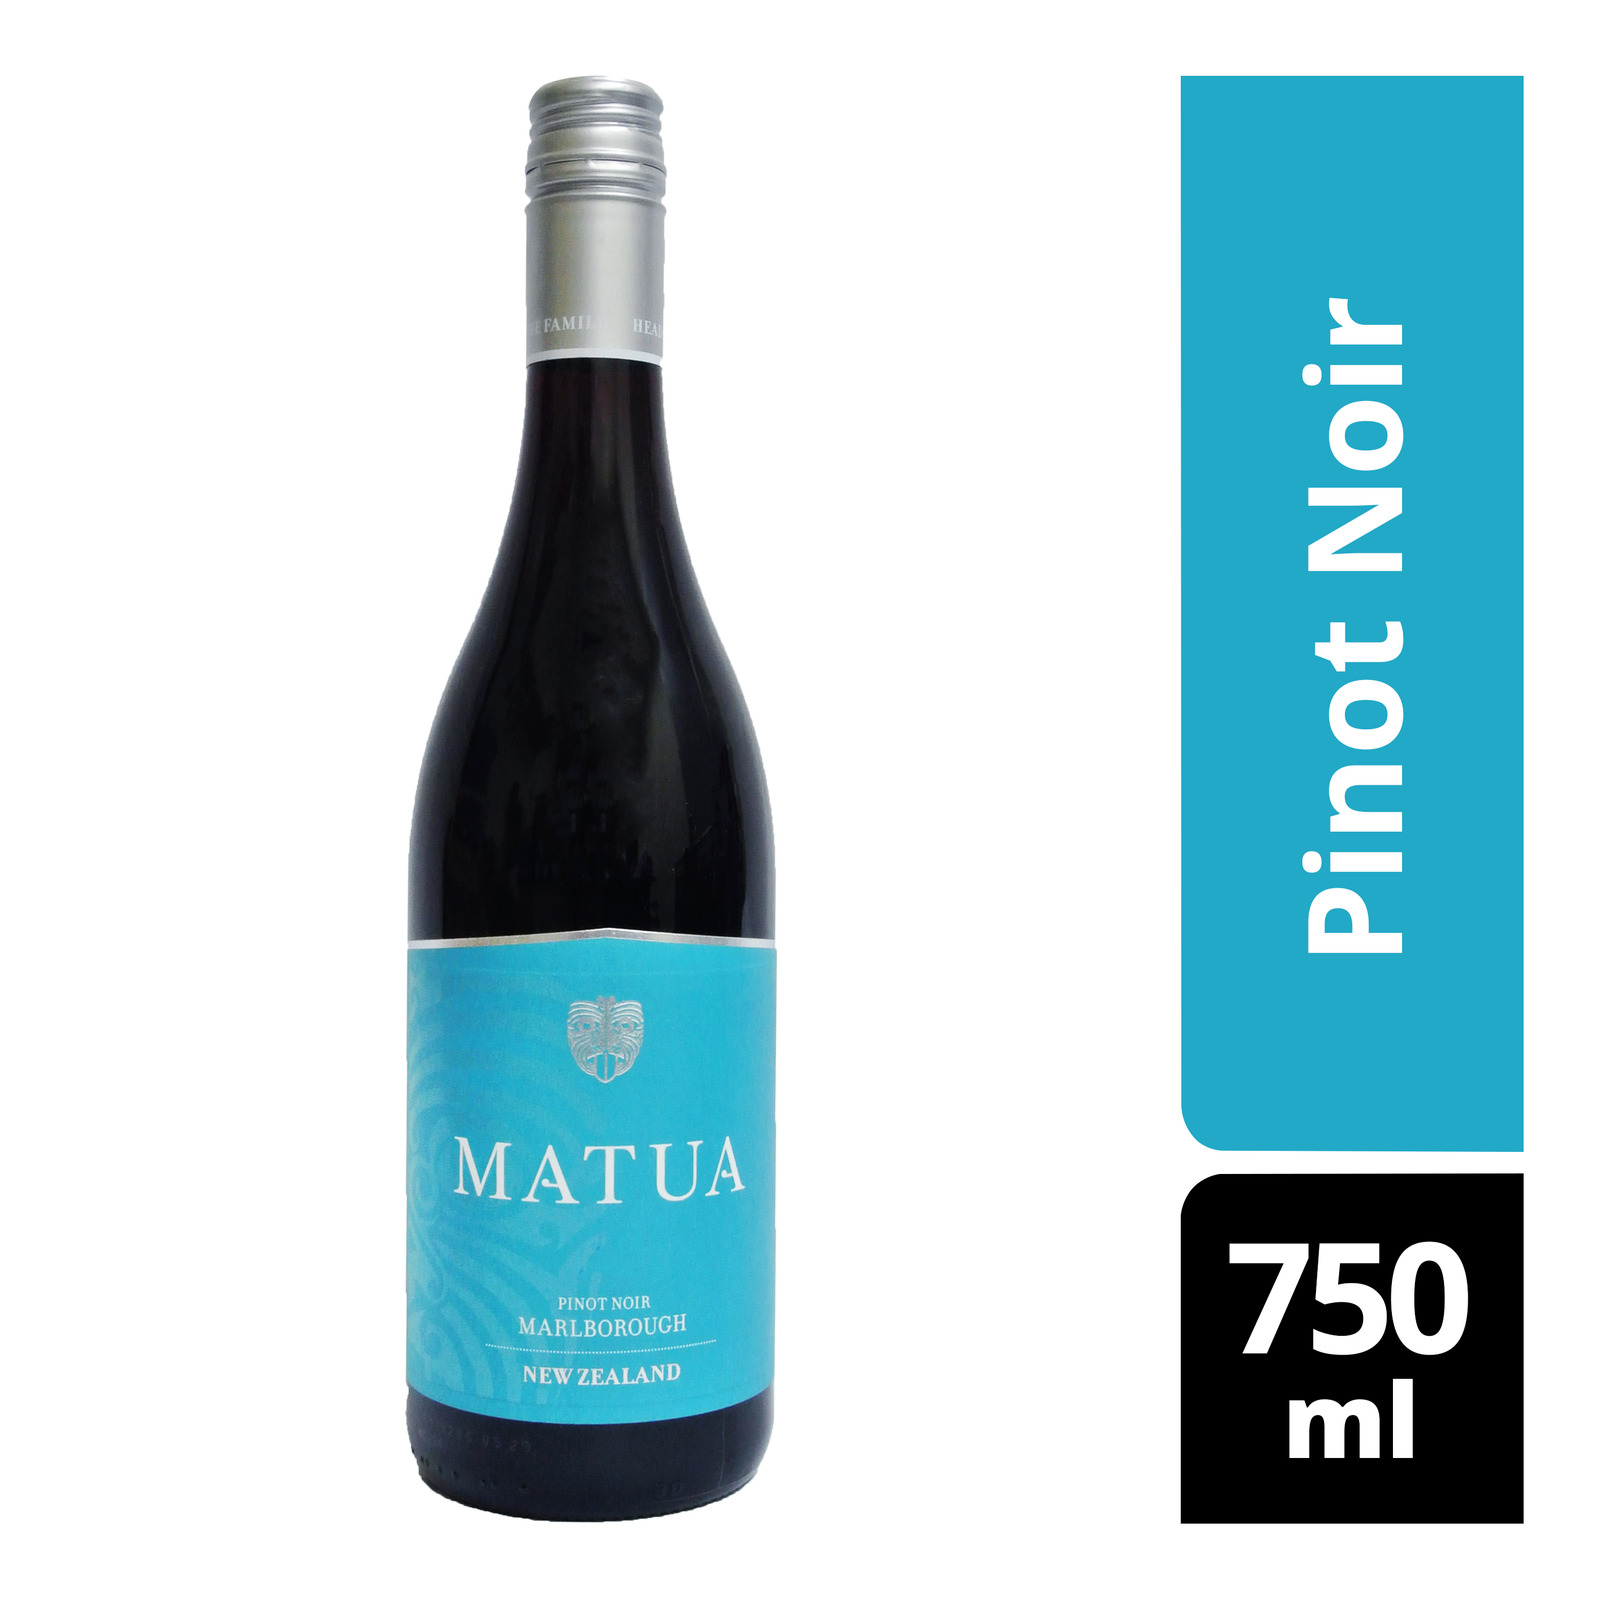 Matua Malborough Red Wine - Pinot Noir